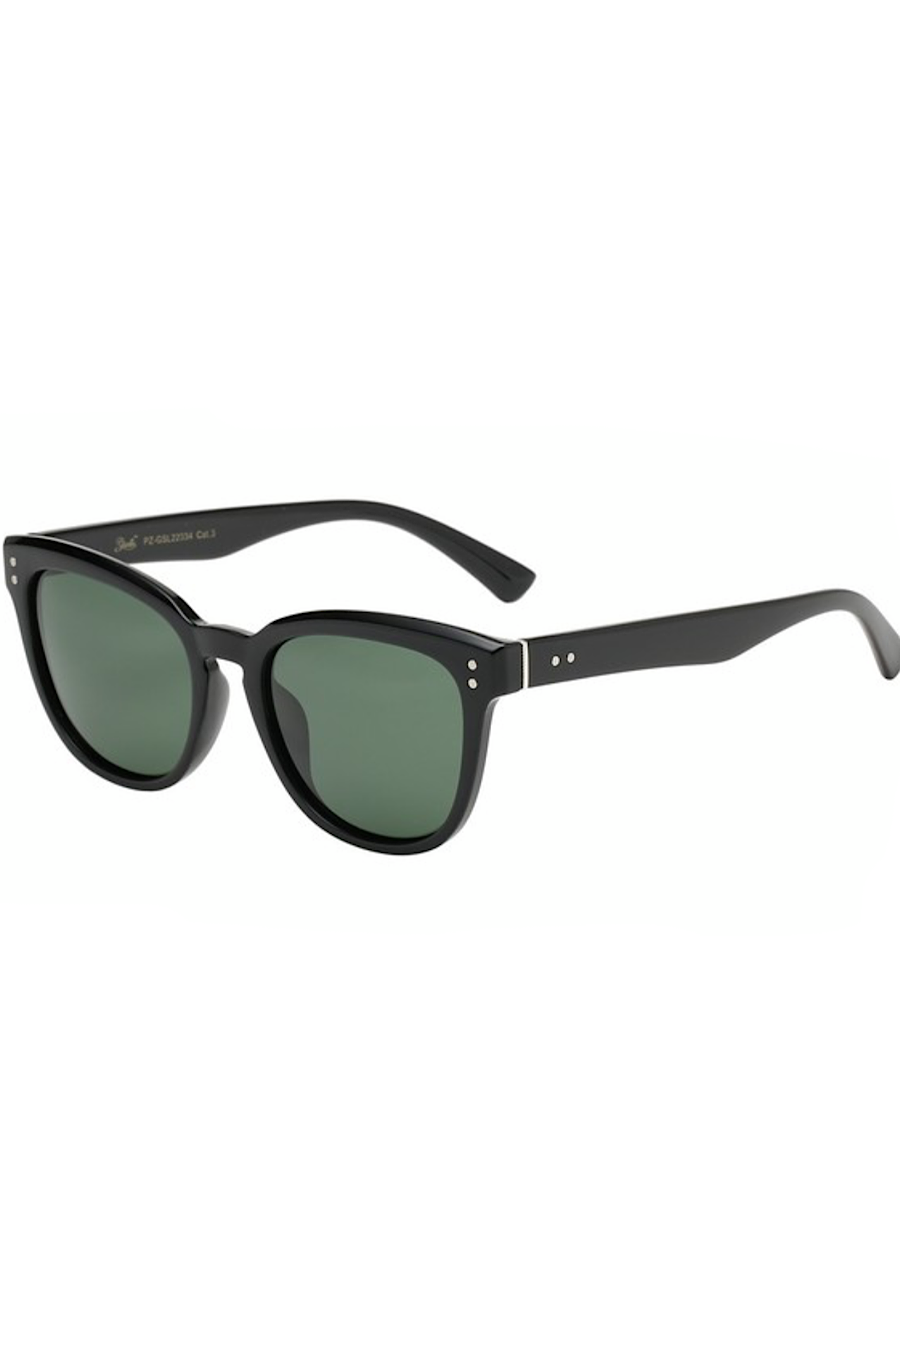 Polarized Wayfarer Lens Sunglasses in Various Colors